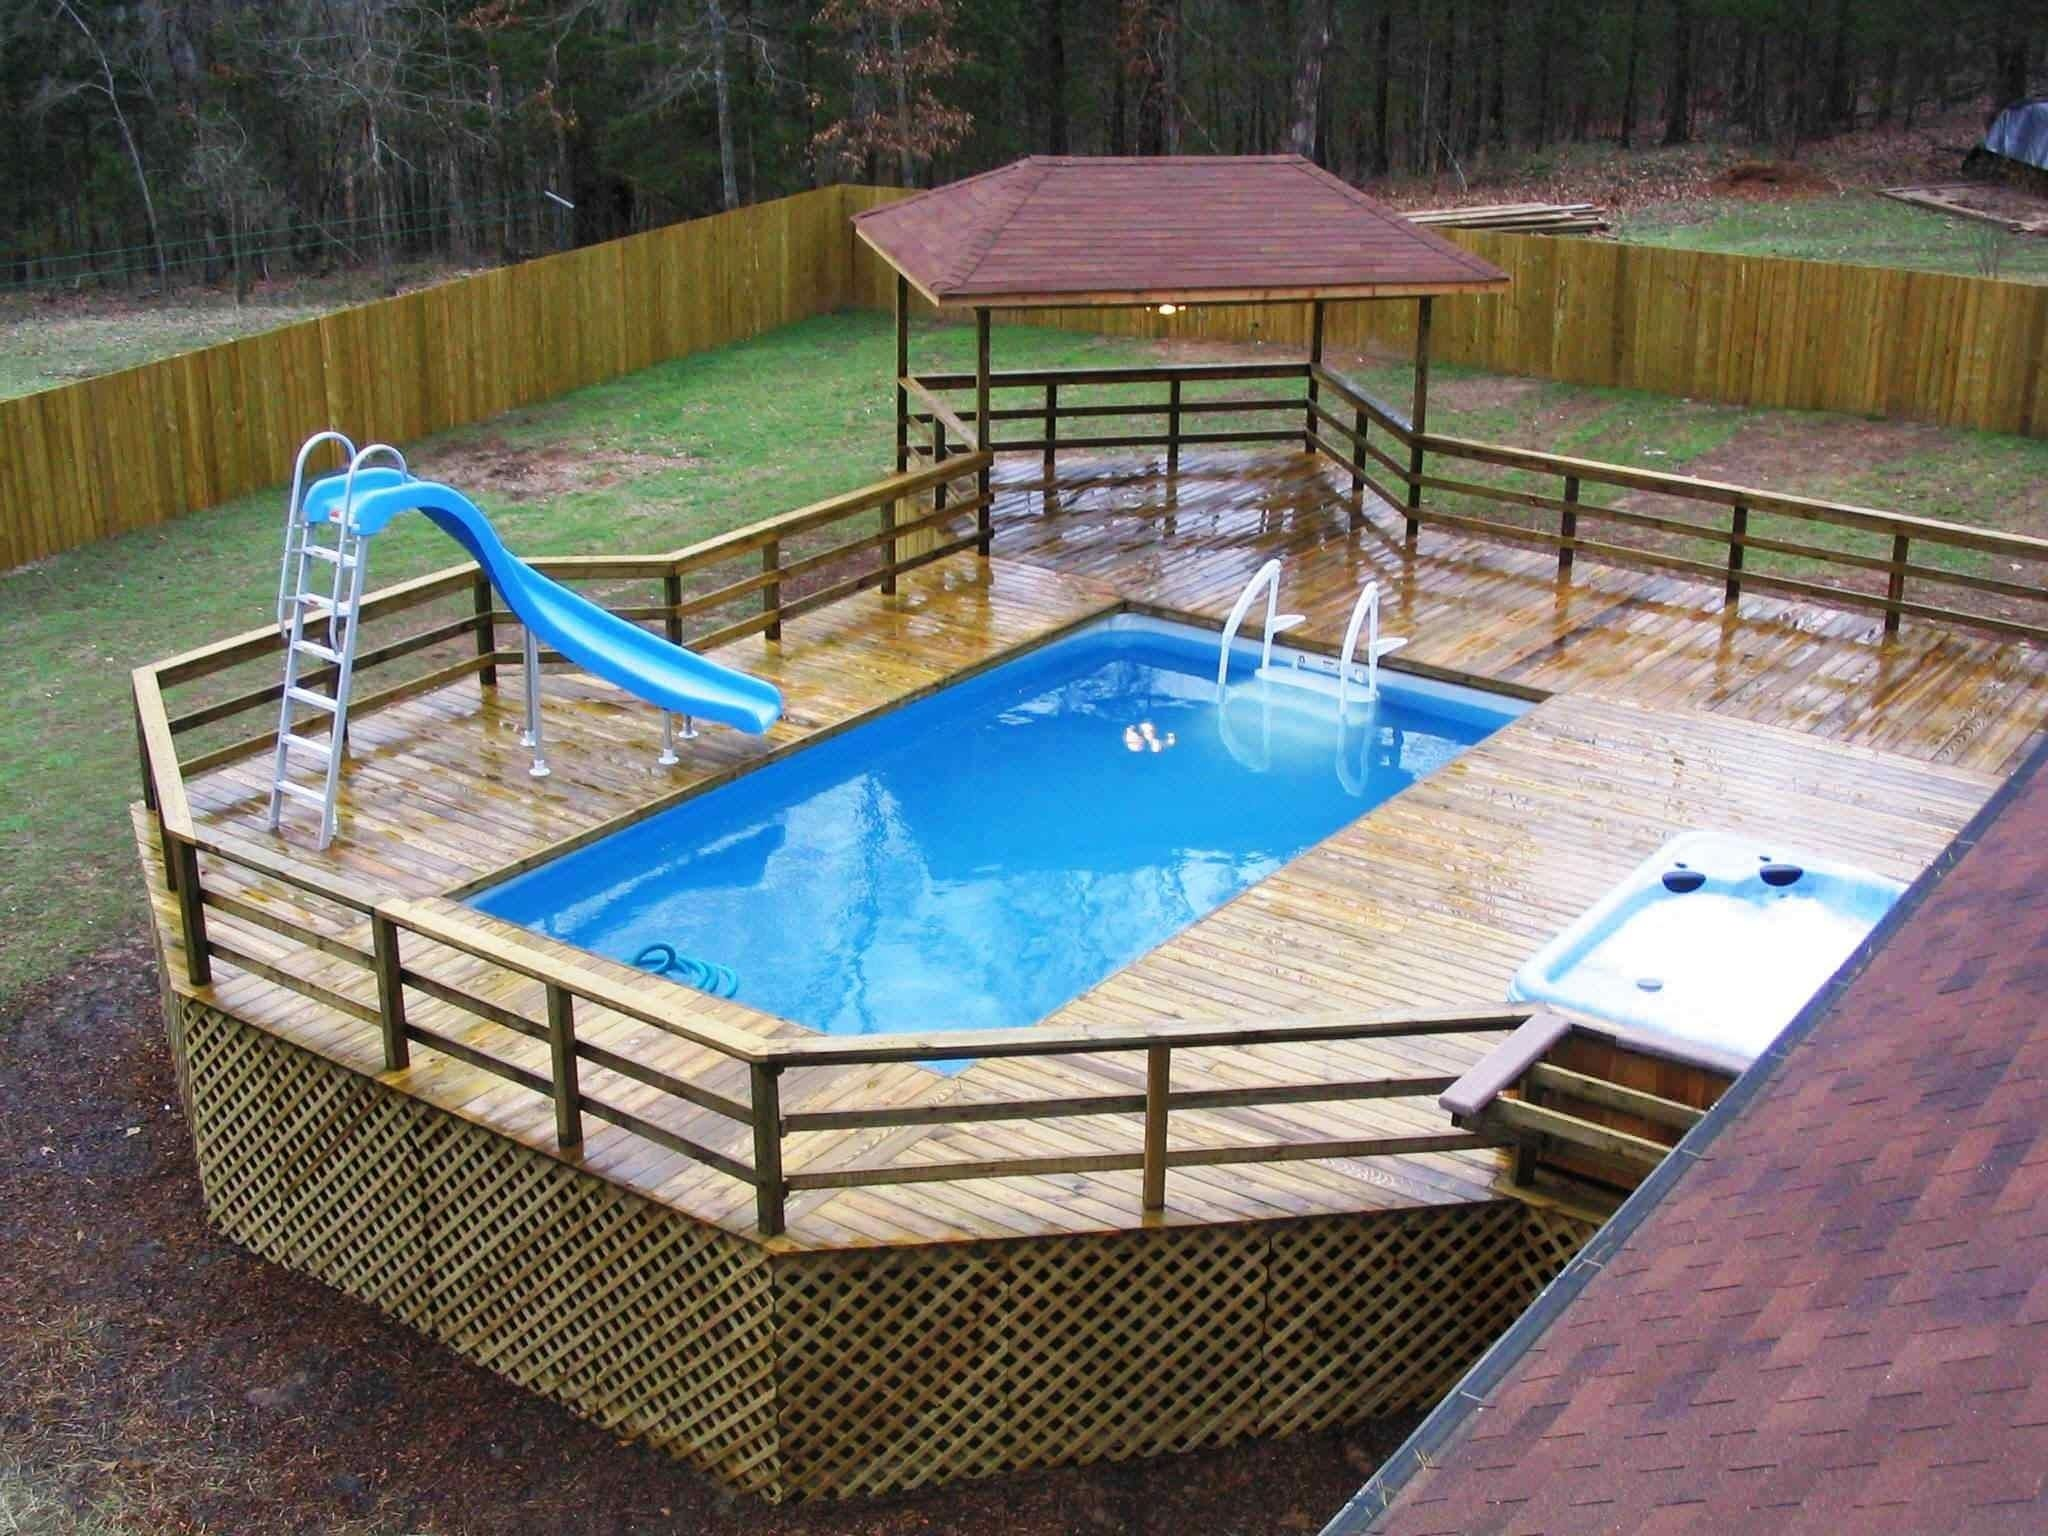 10 Unique In Ground Pool Deck Ideas pool decking for above ground pool google search decks 2020